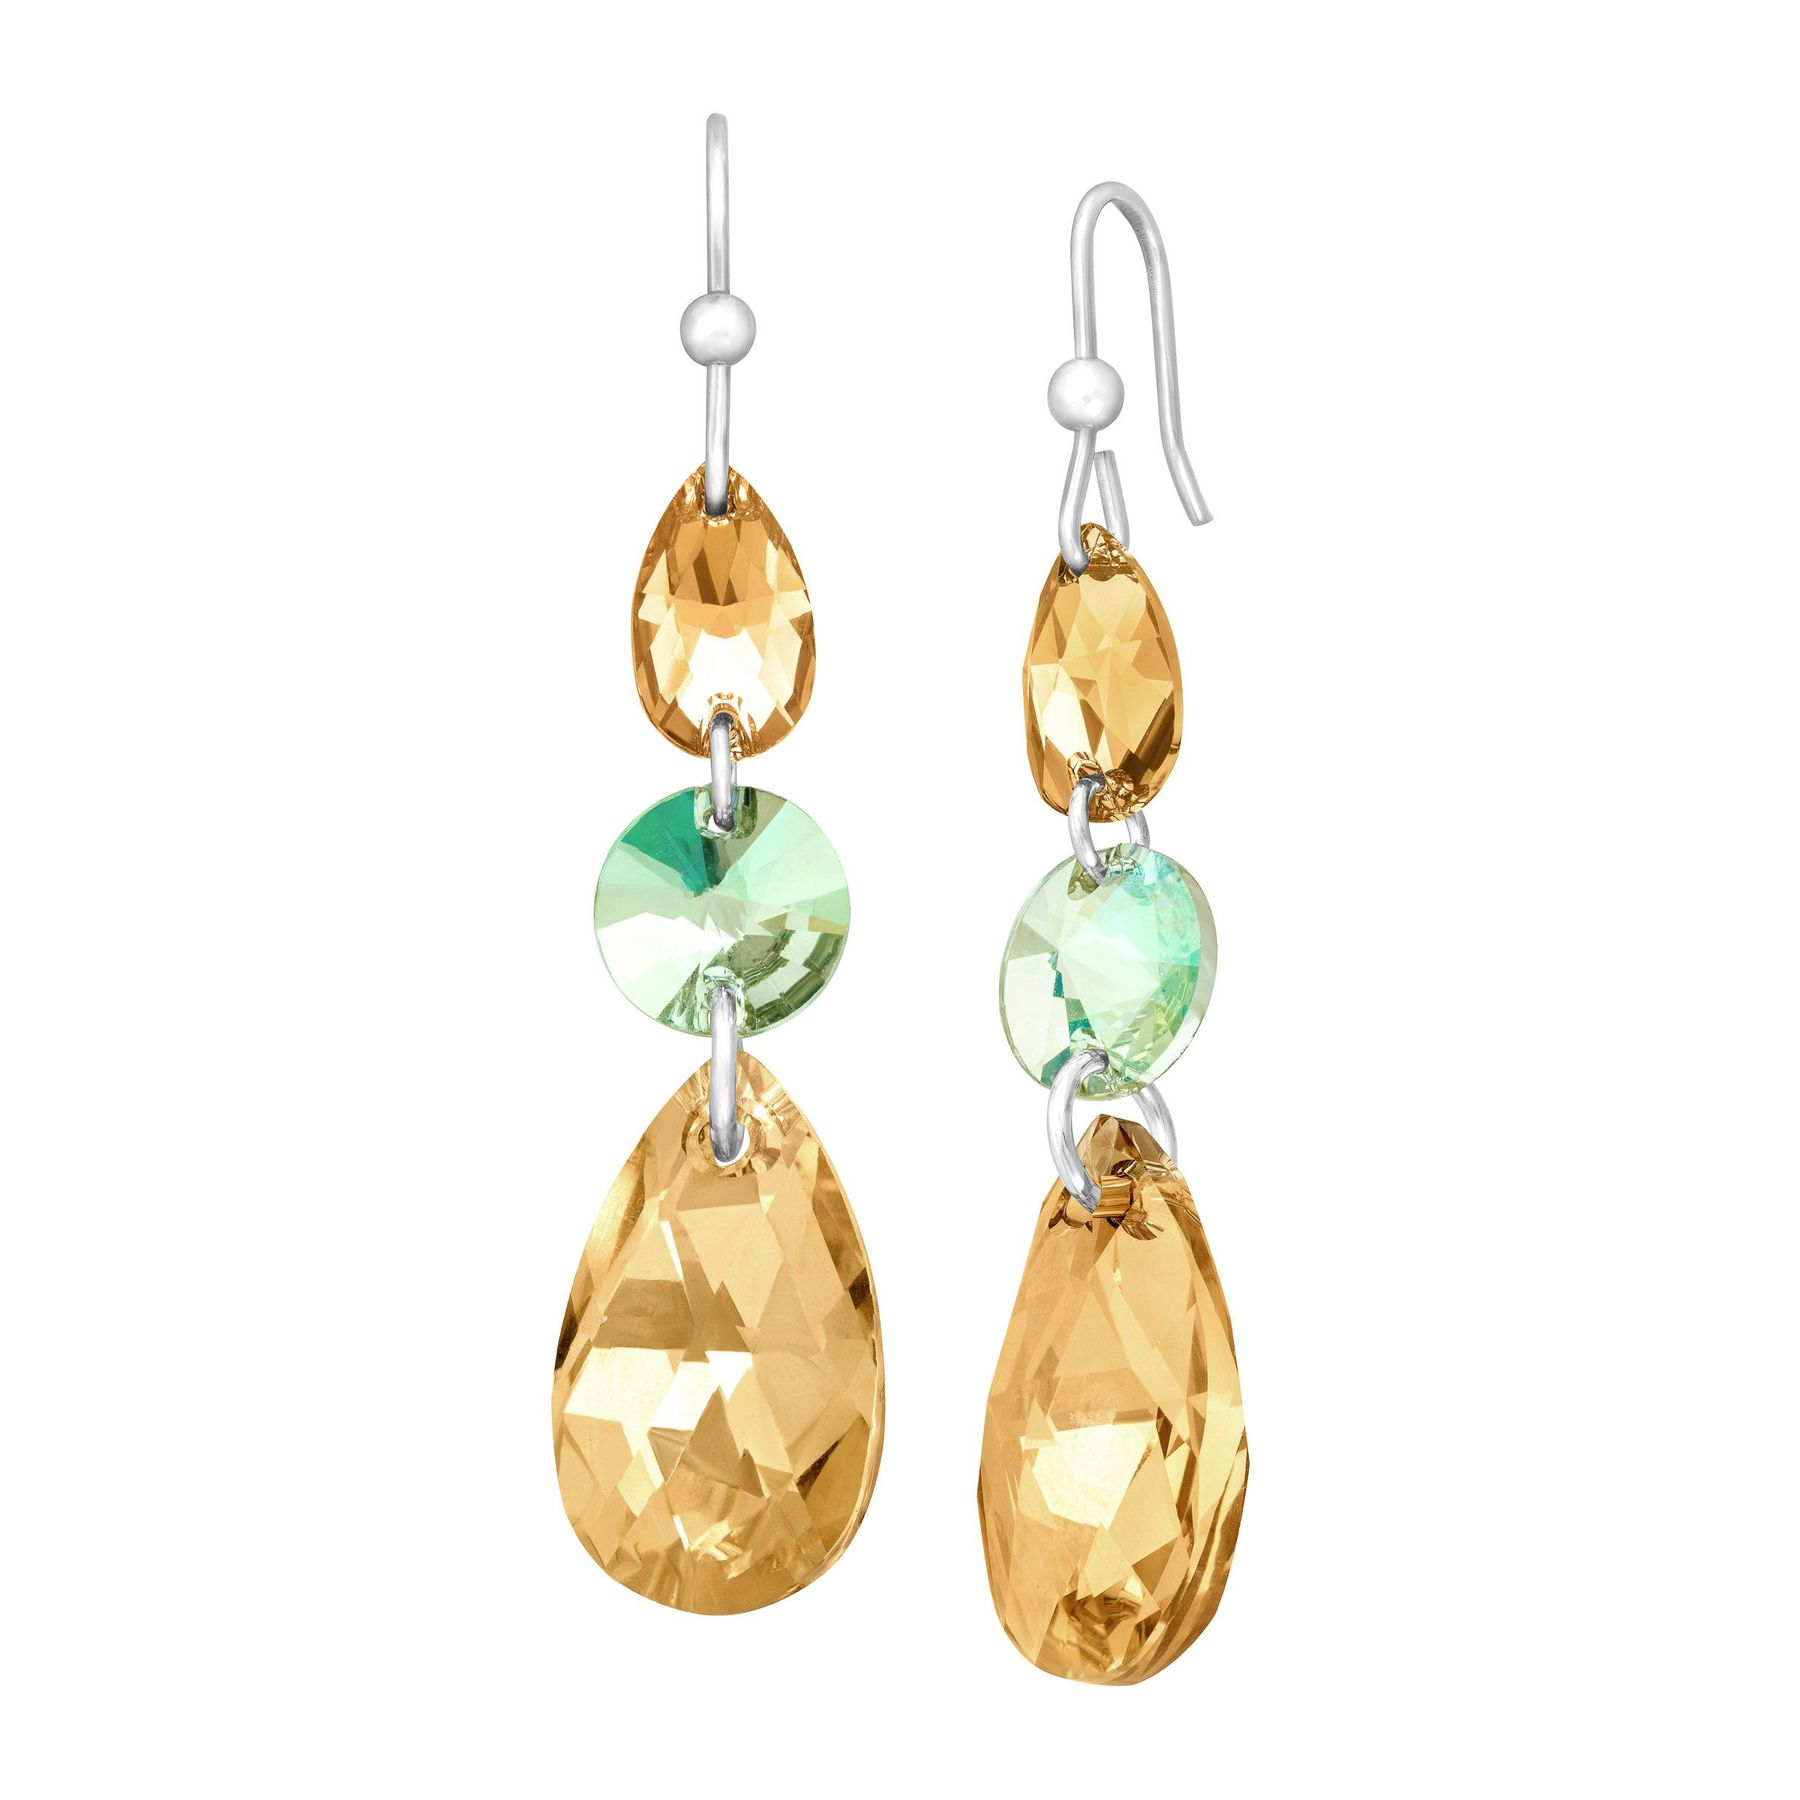 Triple Drop Earrings With Champagne Swarovski Crystals